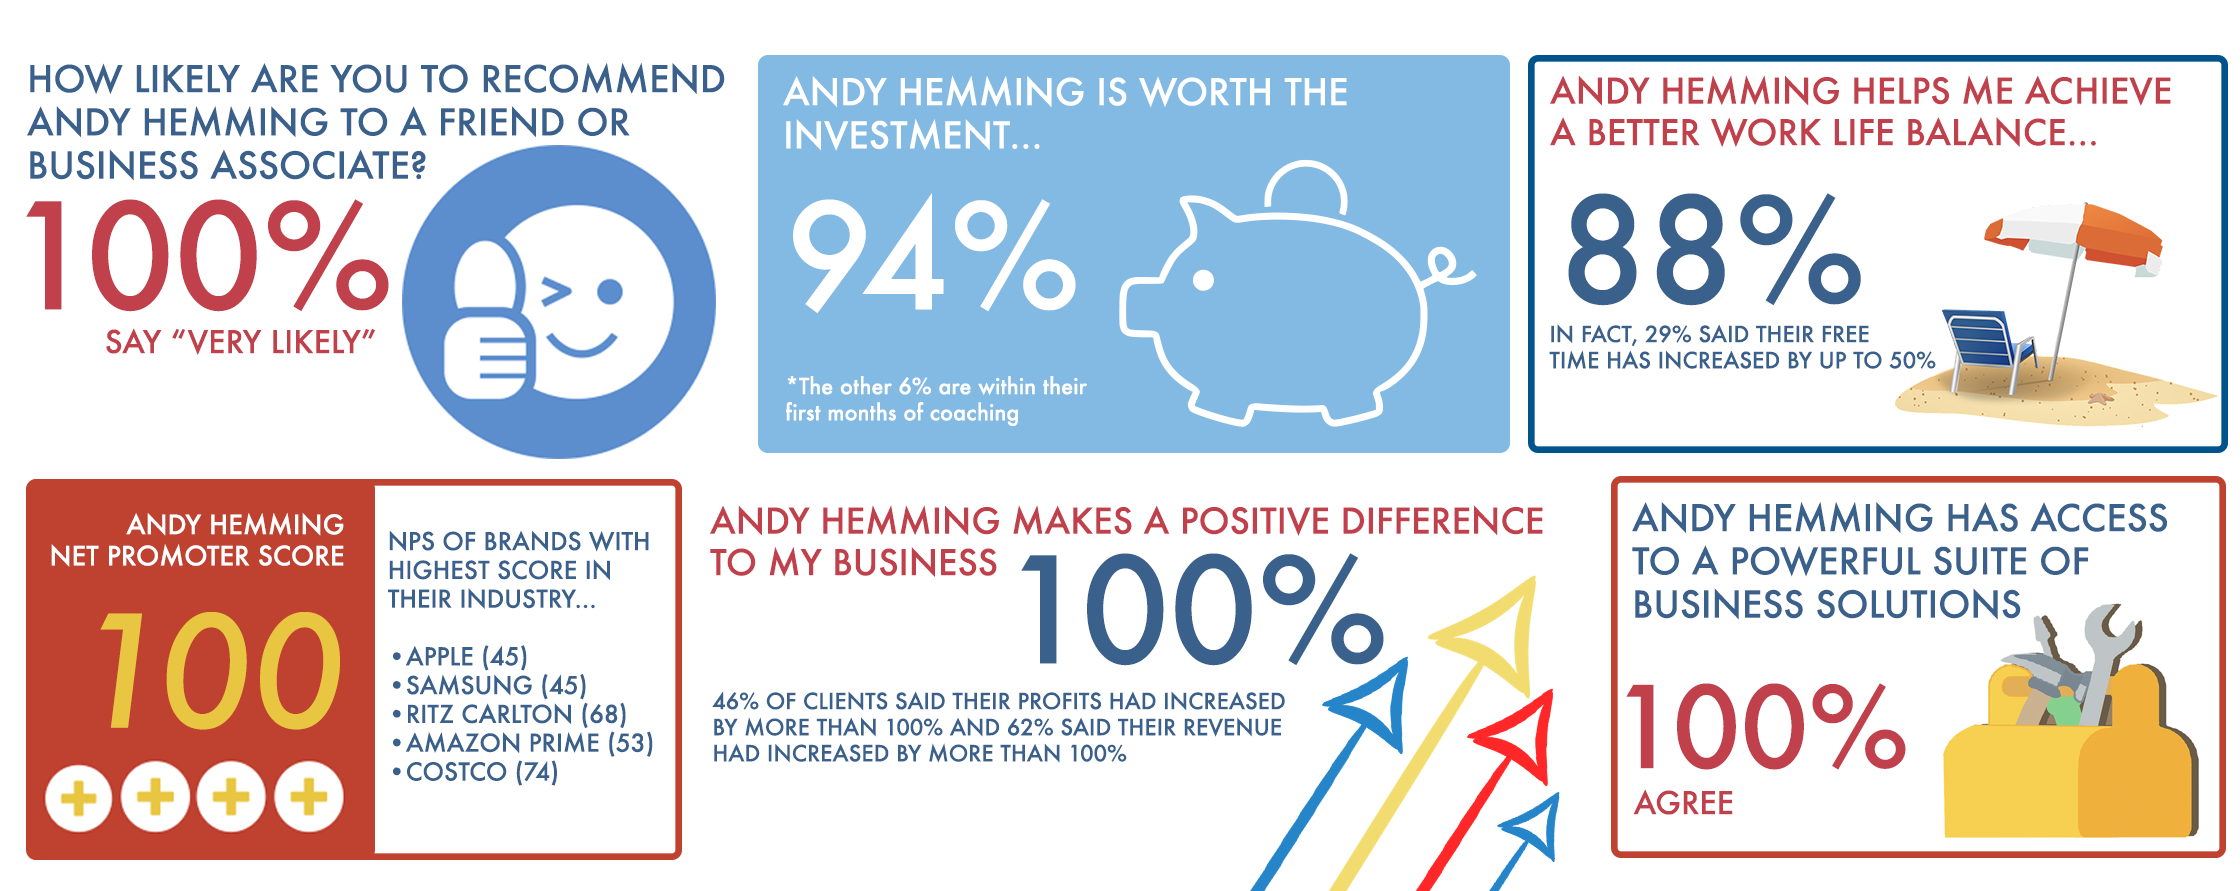 Andy Hemming Business Coach Online NPS Client Feedback Infographic